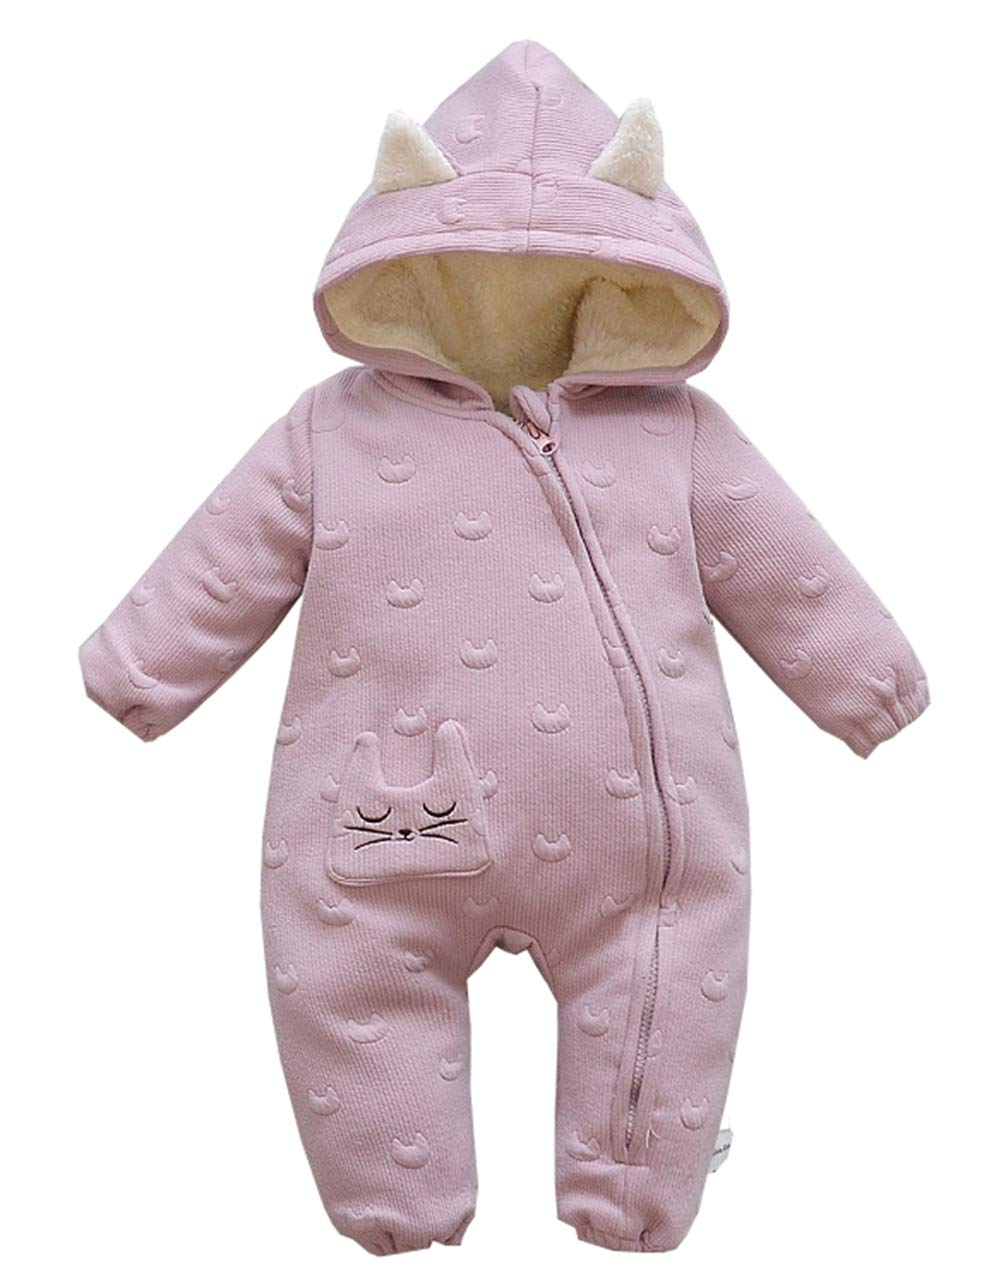 Fairy Baby Boy Girls Hooded Romper Thick Outwear Jumpsuit Fleece Snowsuit